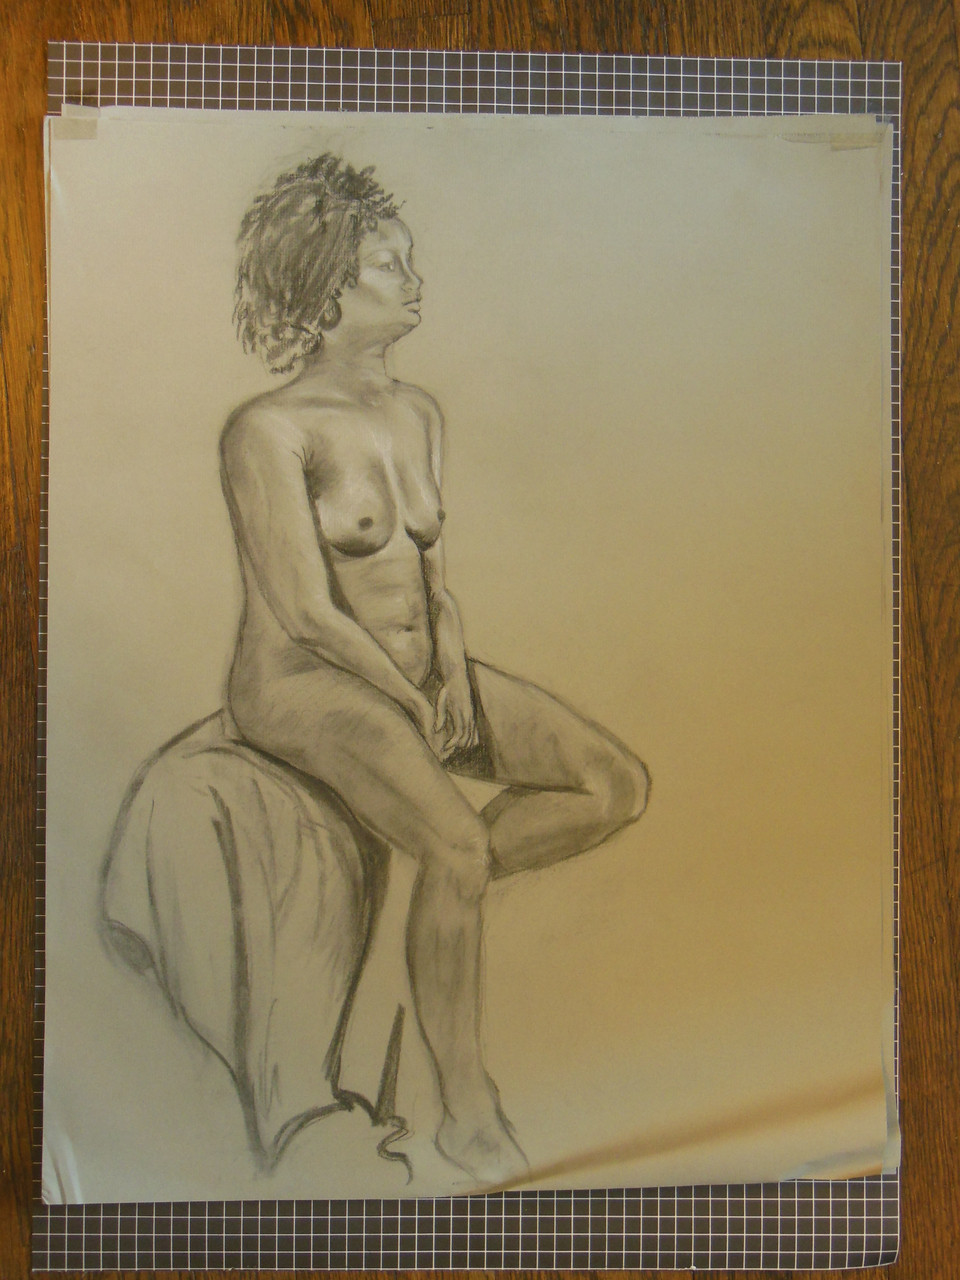 Nude Drawing: Charcoal & pastel on grey paper. 03